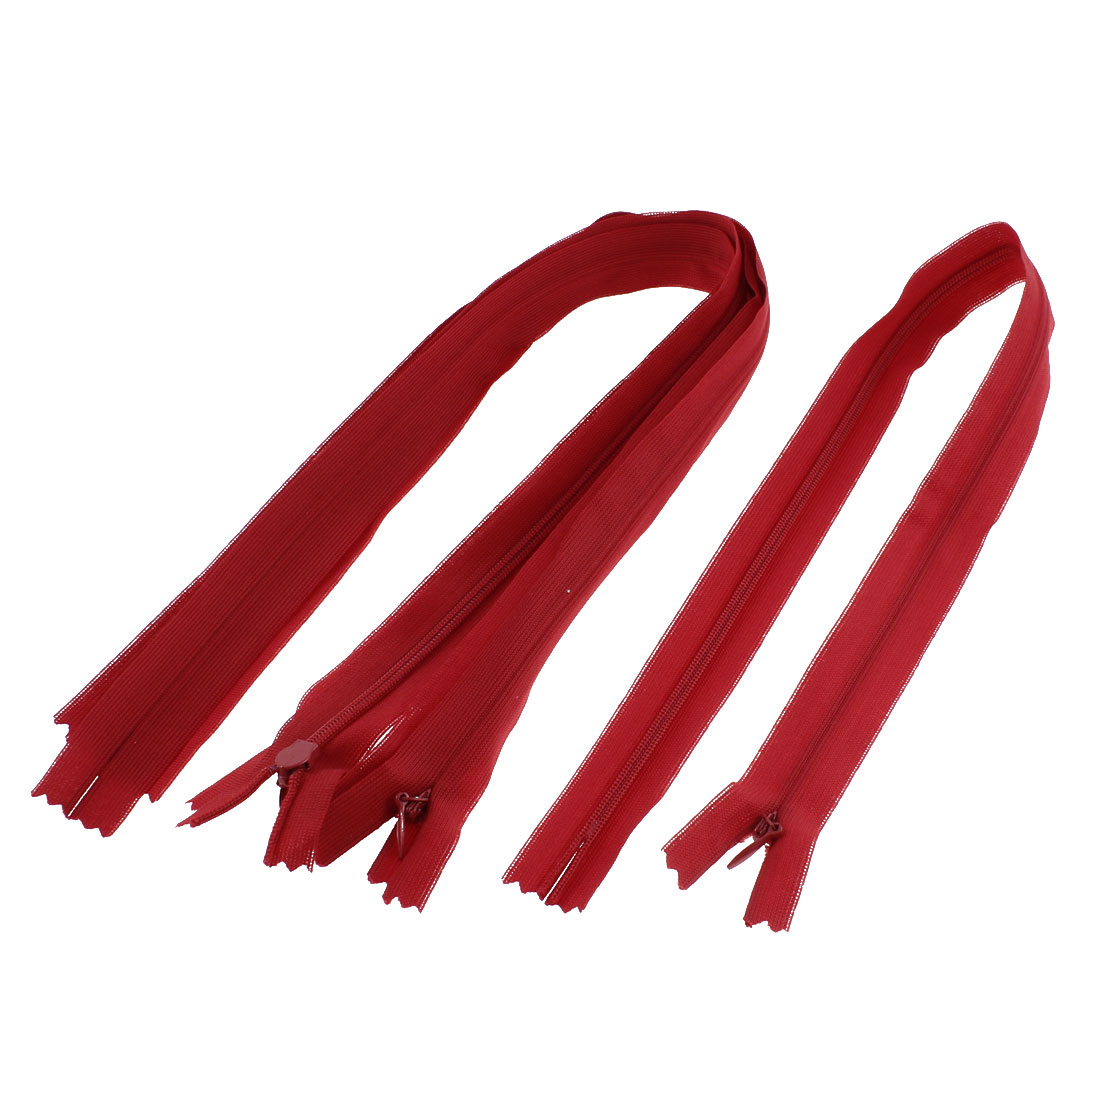 Dress Pants Closed End Nylon Zippers Tailor Sewing Craft Tool Red 50cm 5 Pcs